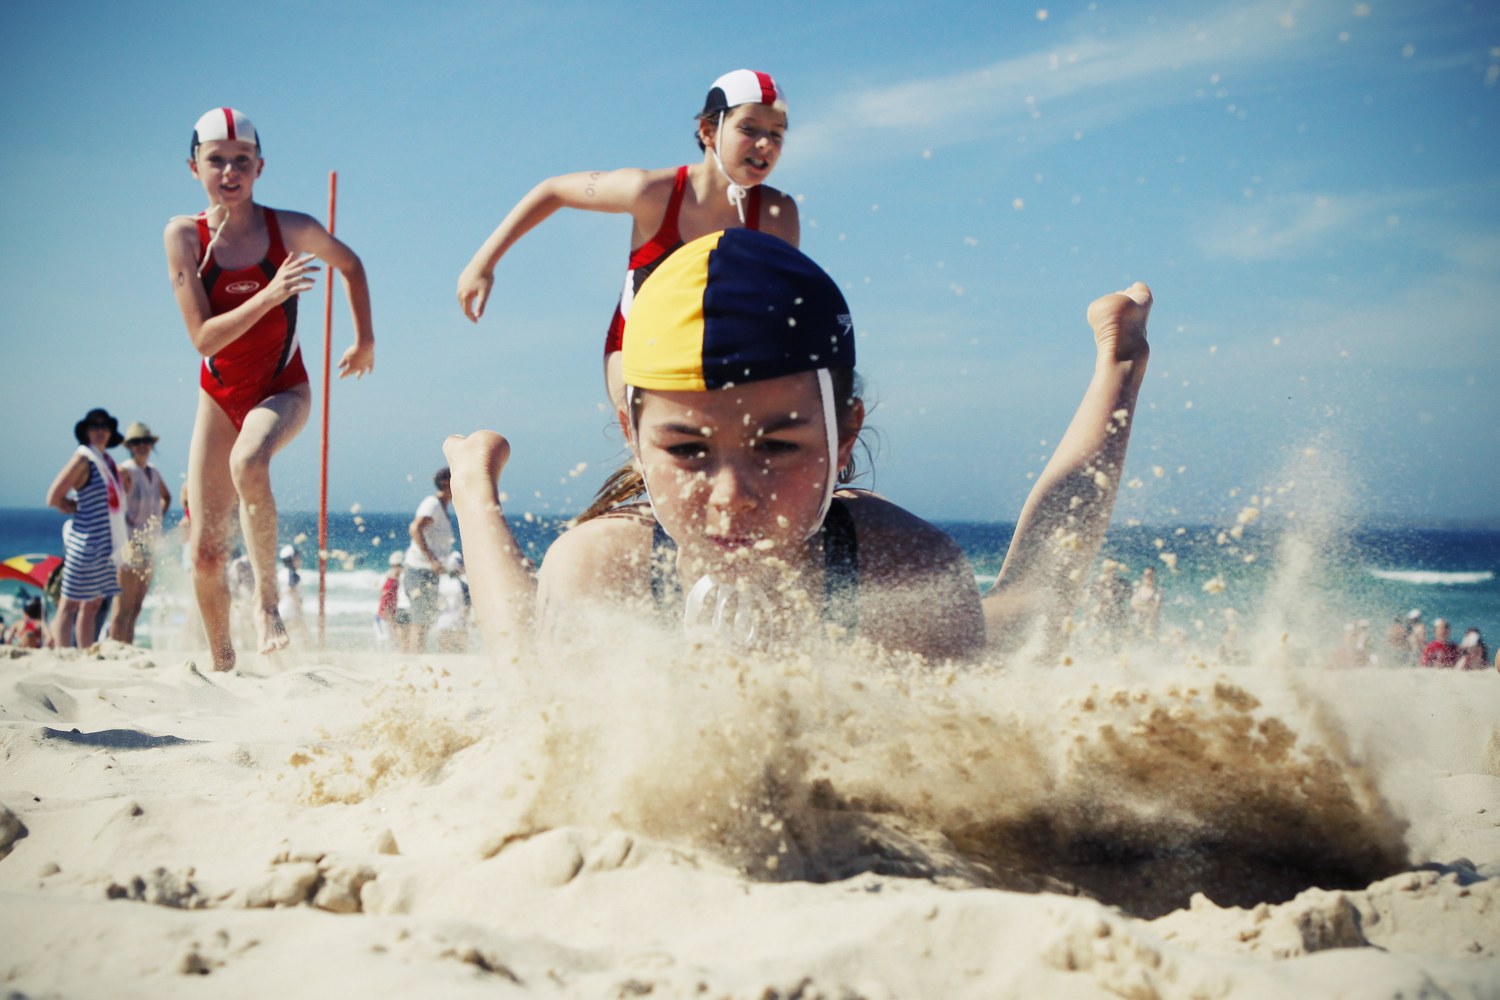 Nippers_Surf_Life_Saving_Bondi_Beach.06.jpeg